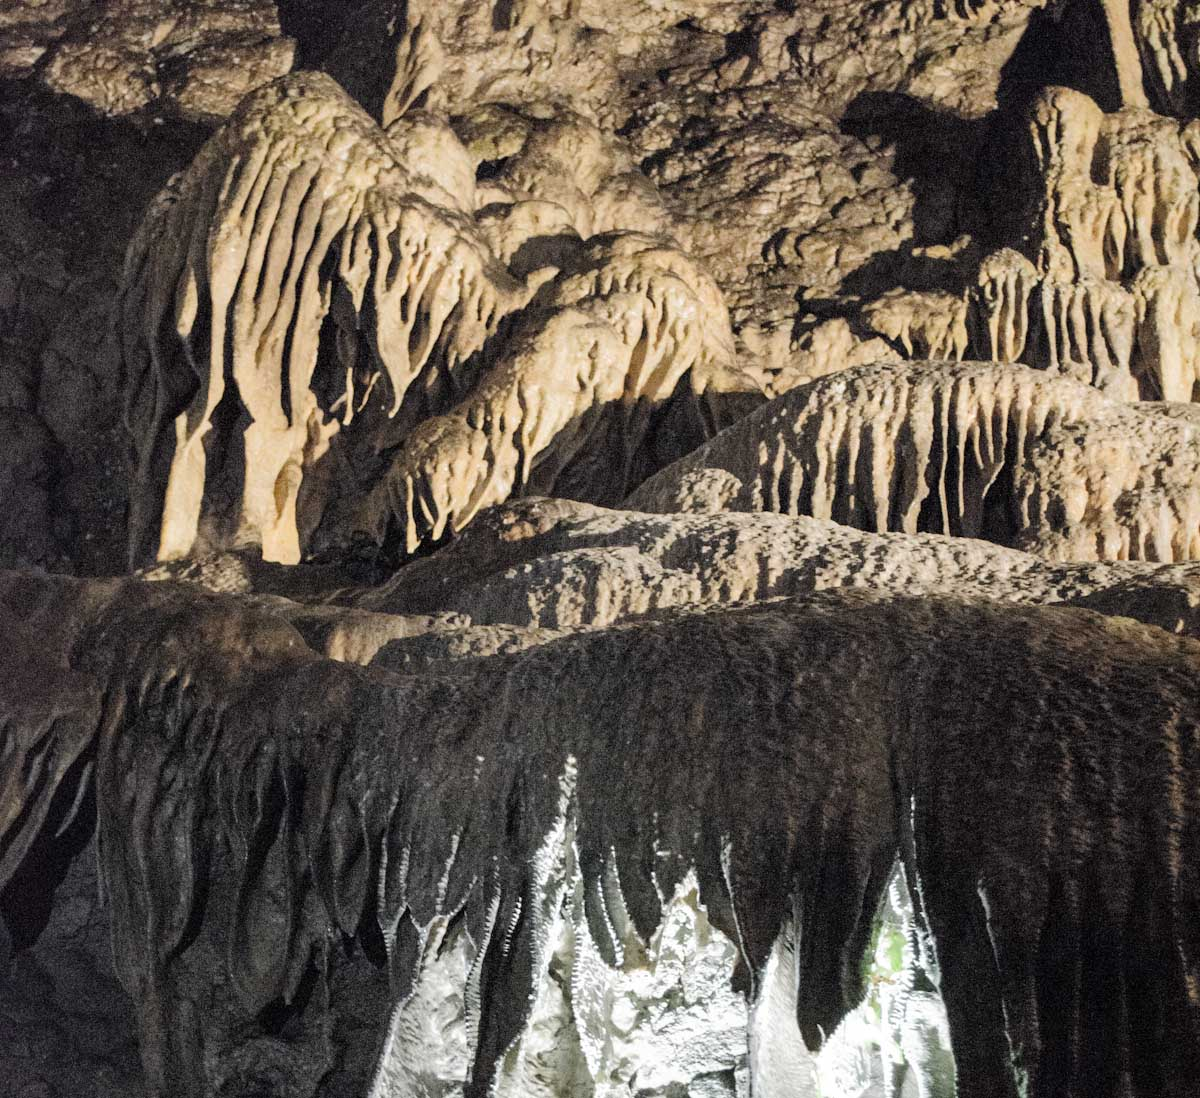 Stalactite formations of Dunmore cave